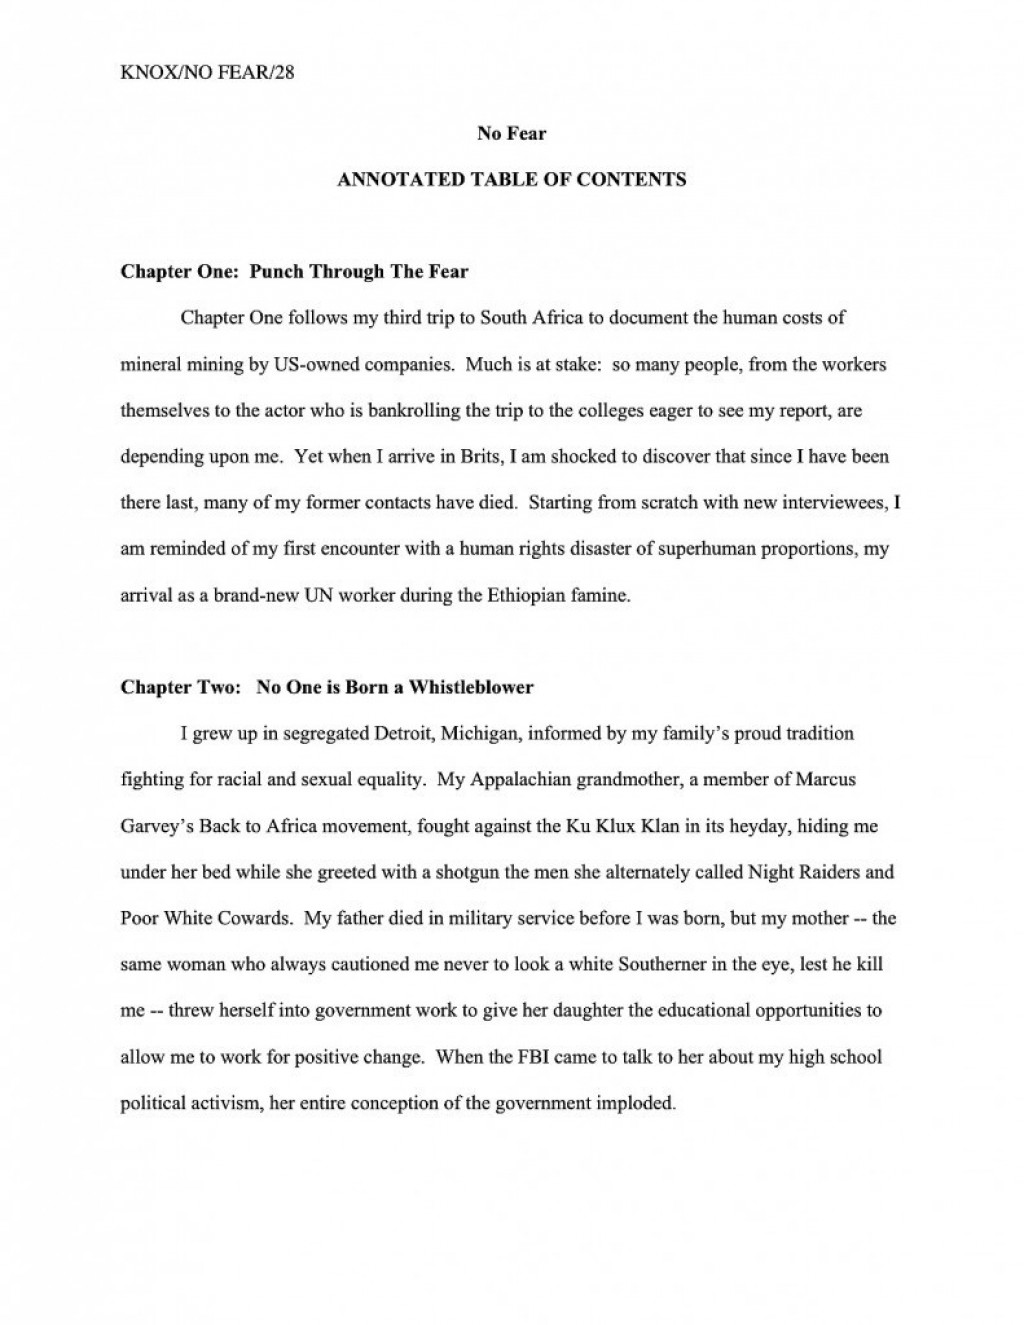 014 Essay Example Annotated Table Of Contents2 791x1024resize7912c1024 Wonderful Memoir Definition Scholastic Writing Contests 2017 Large